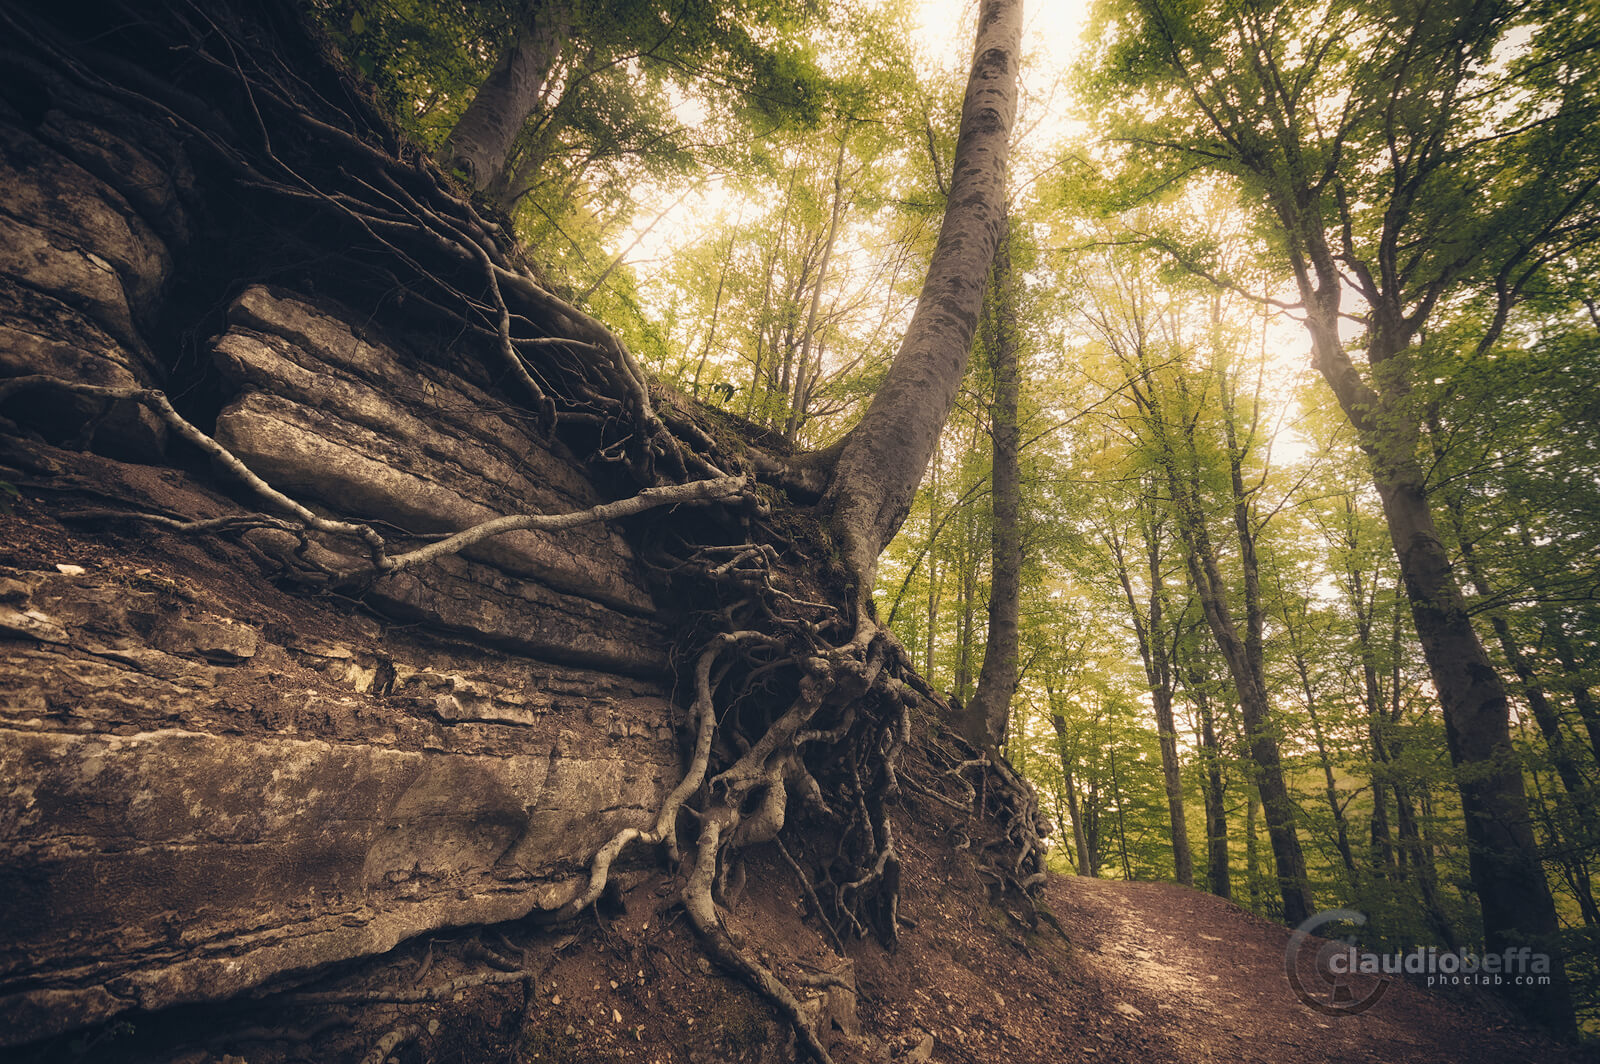 Path, Forest, Woods, Mount Cucco, Umbria, Italy, Nature, Trees, safe path, beechwood, light, roots, grasping tightly